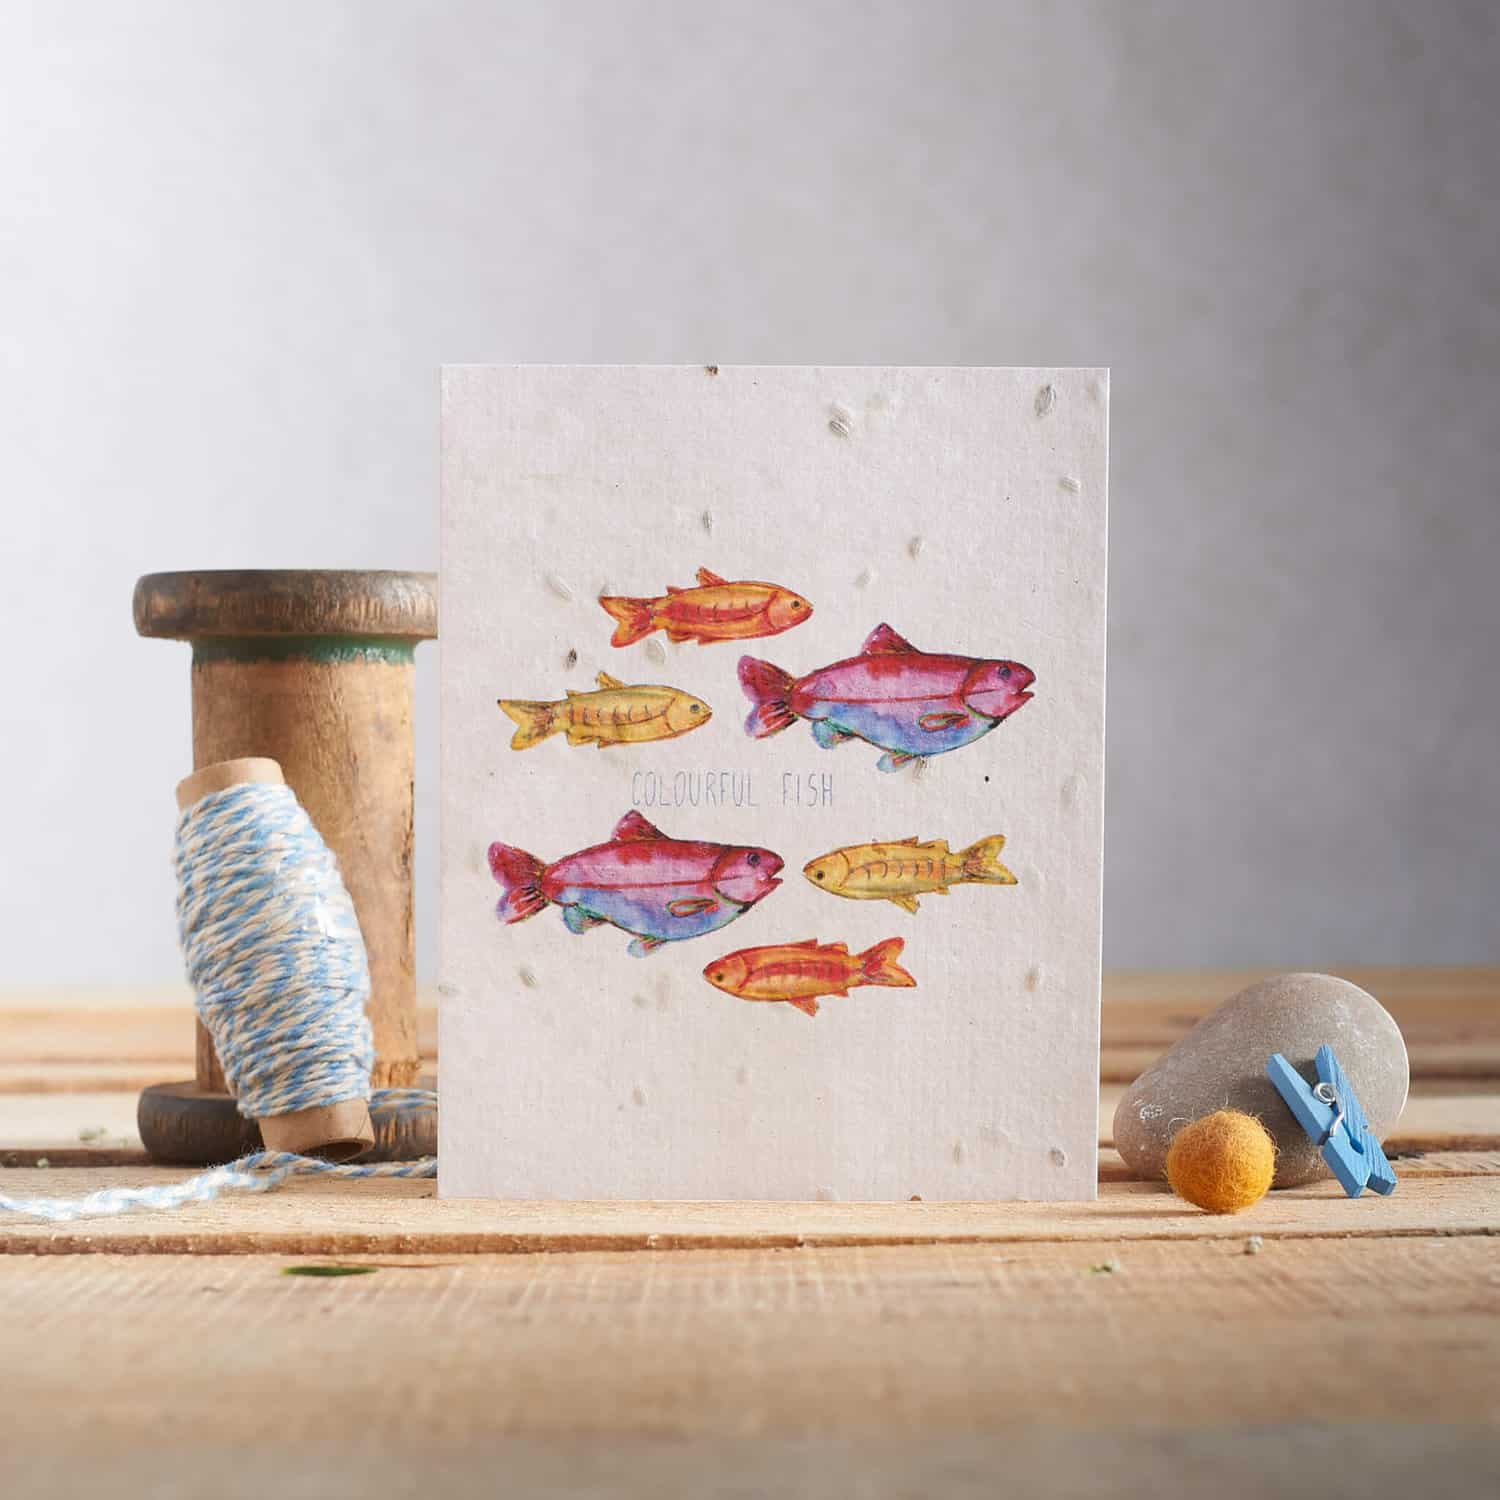 Vintage props used in this greetings card product photograph for Hannah Marchant